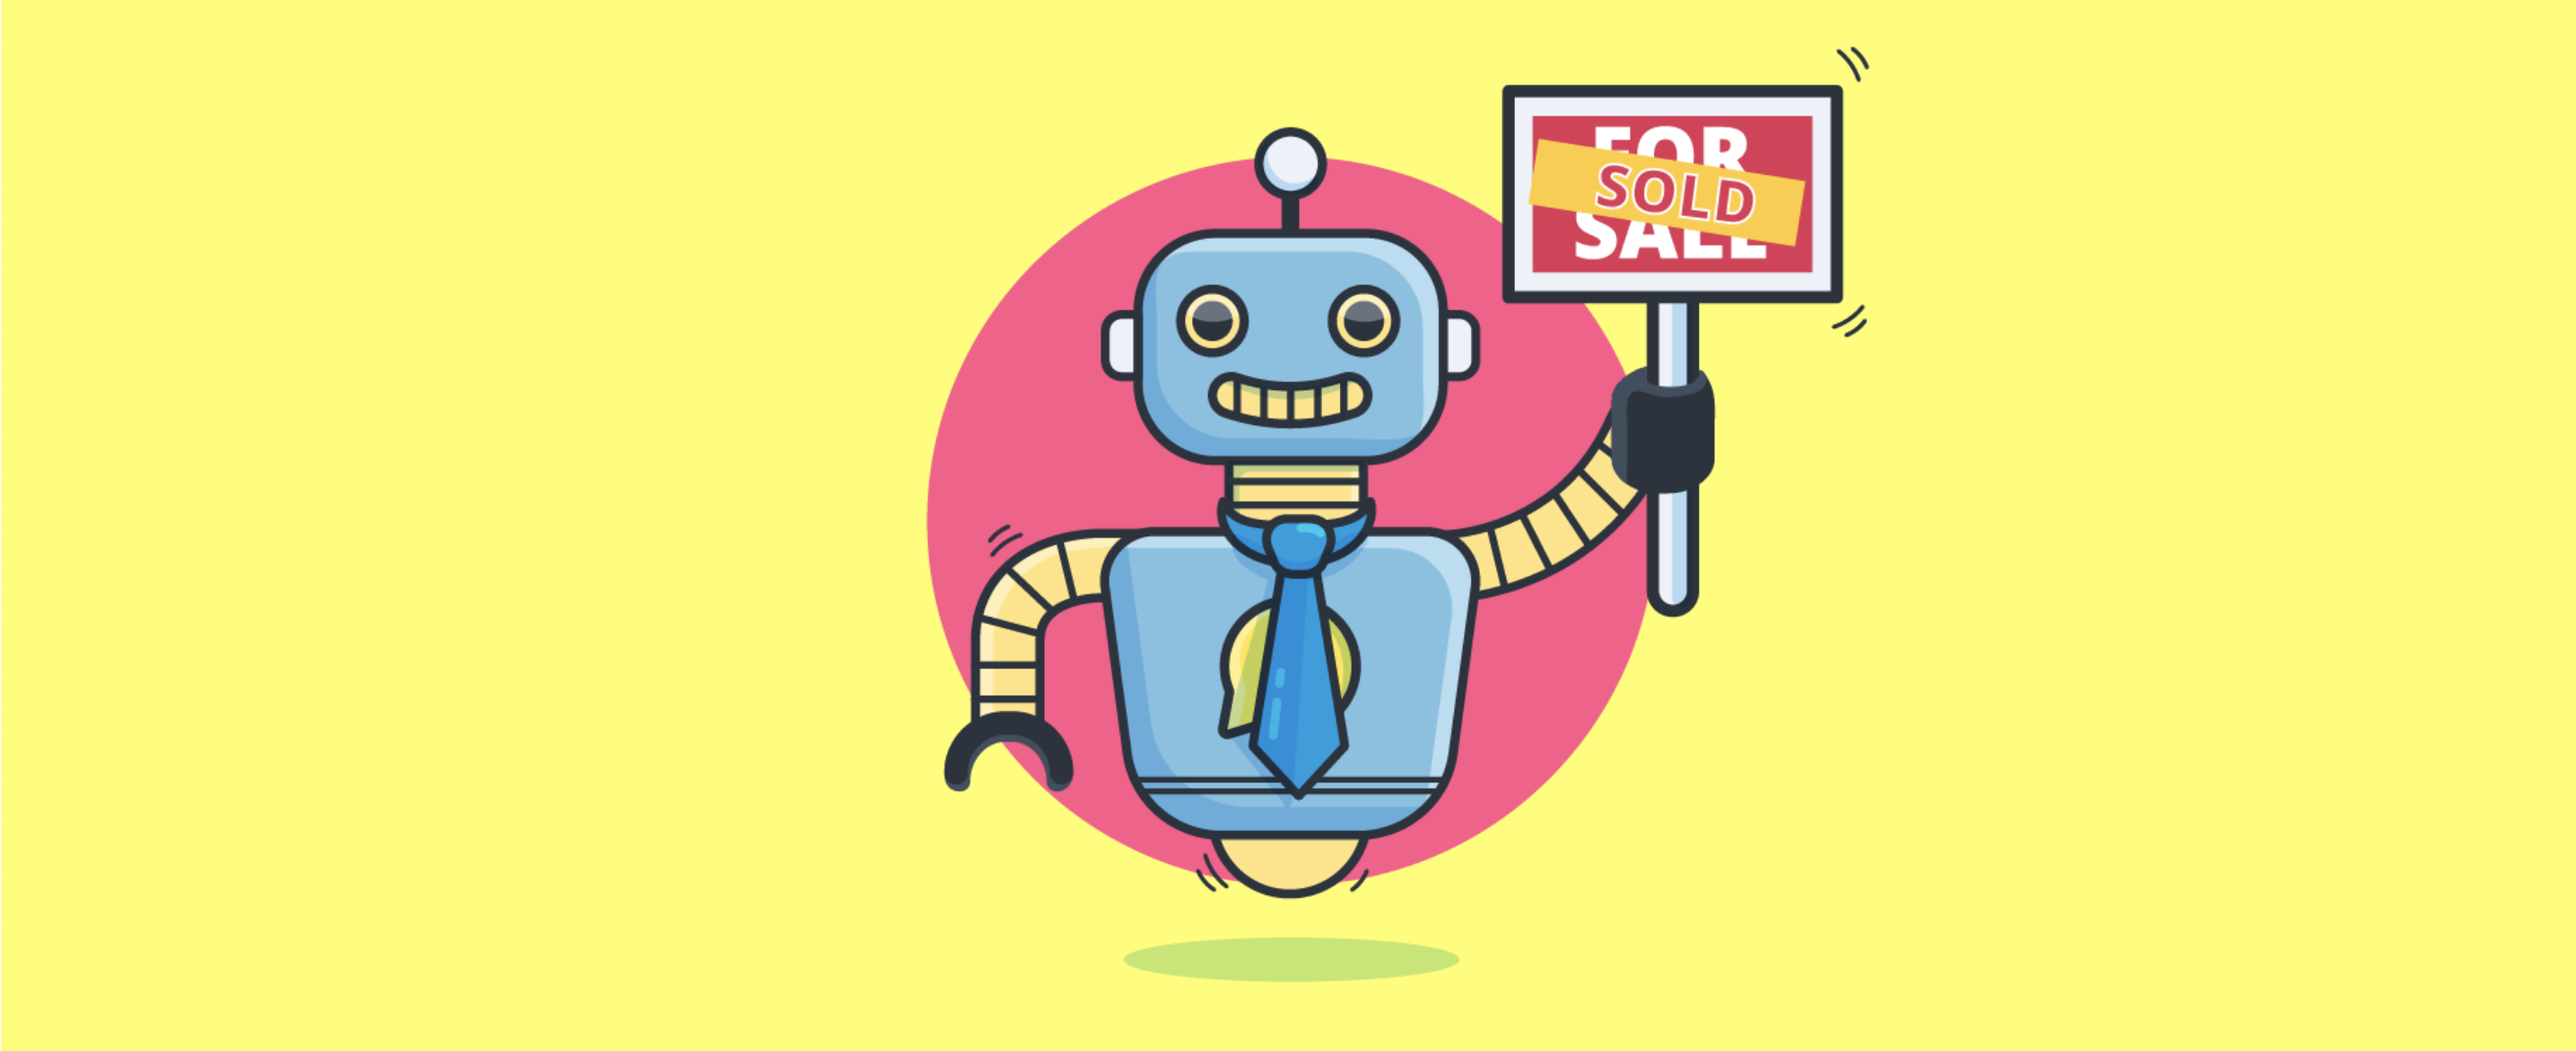 chatbot with sold sign - header image for 4 Real Estate Chatbot Options for Agencies